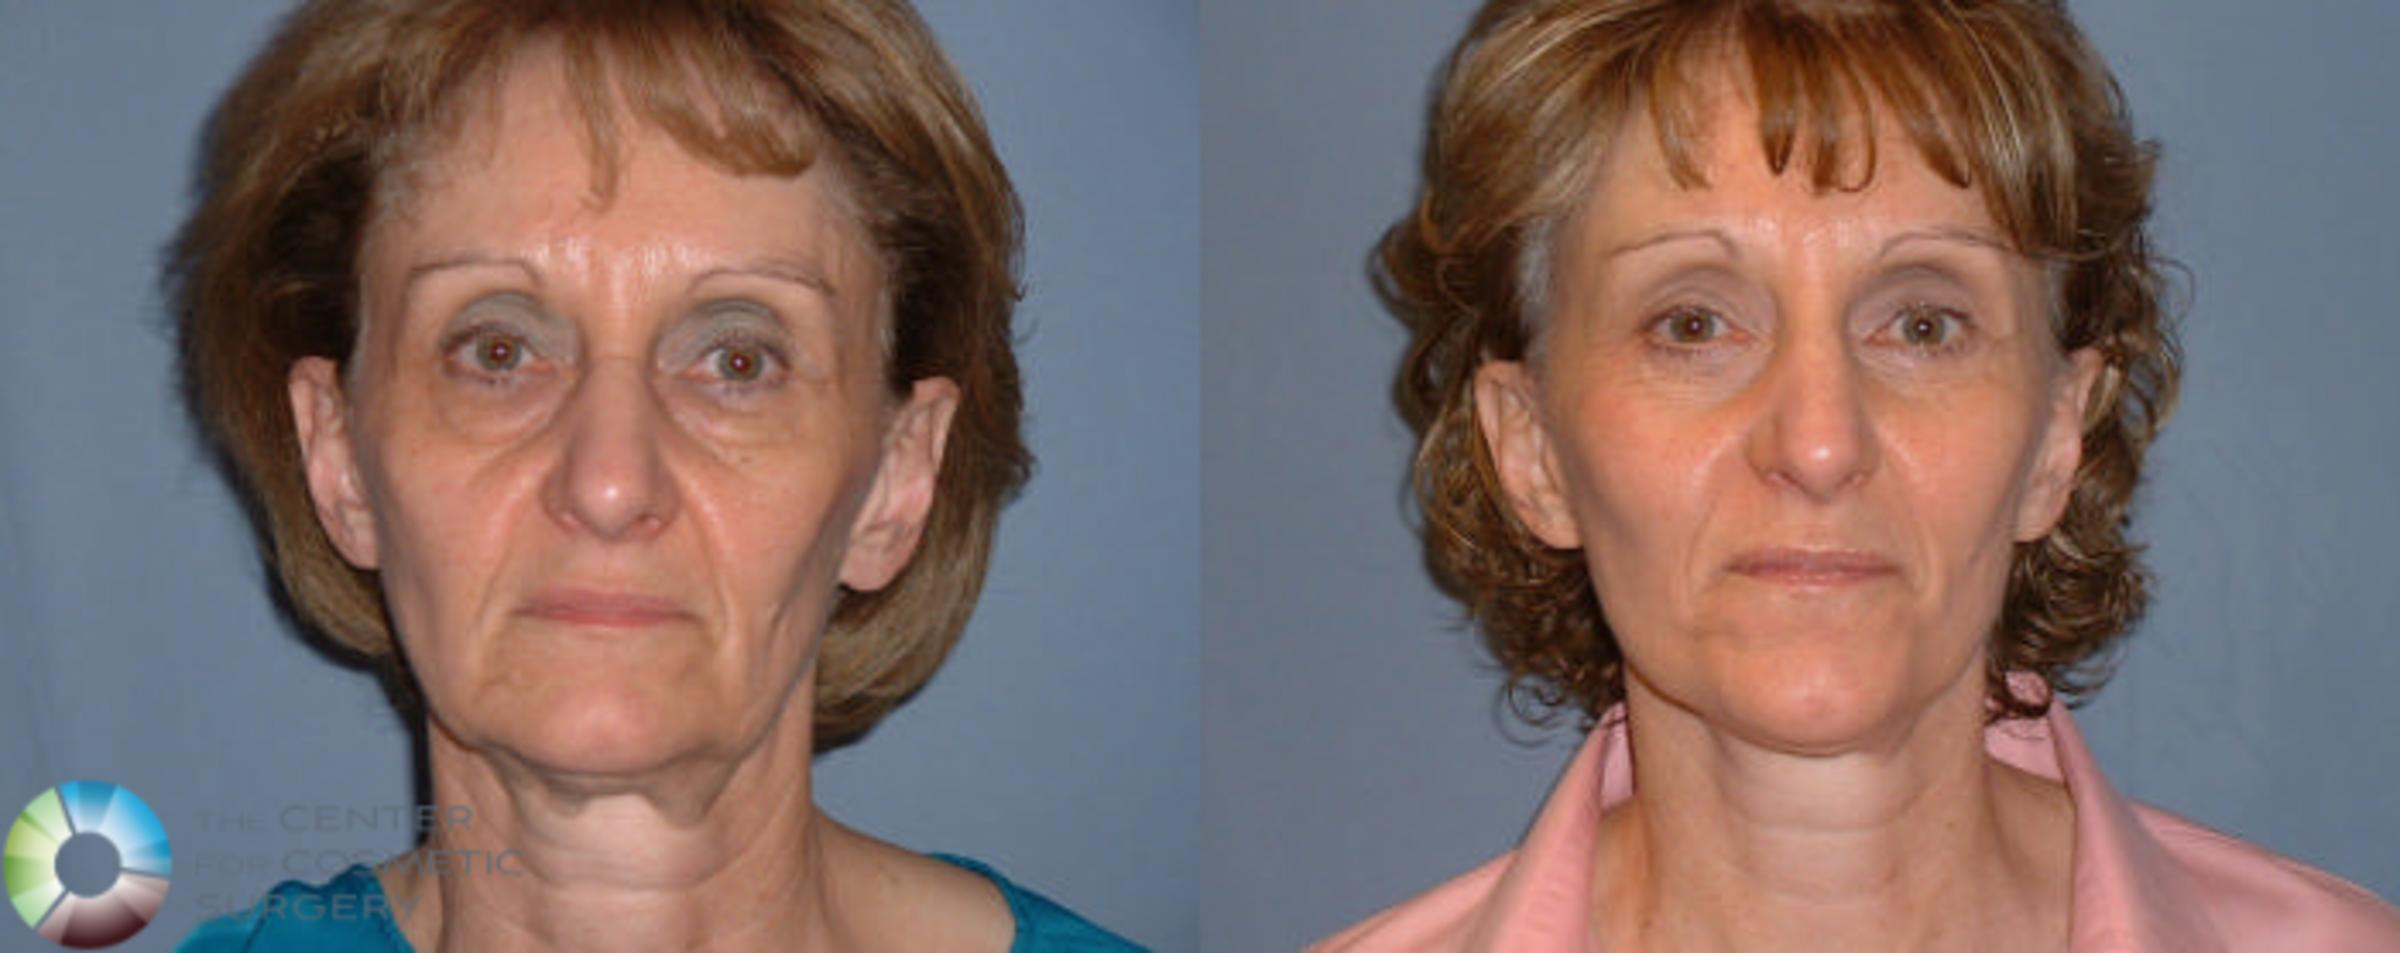 Mini Facelift Case 55 Before & After View #1 | Golden, CO | The Center for Cosmetic Surgery